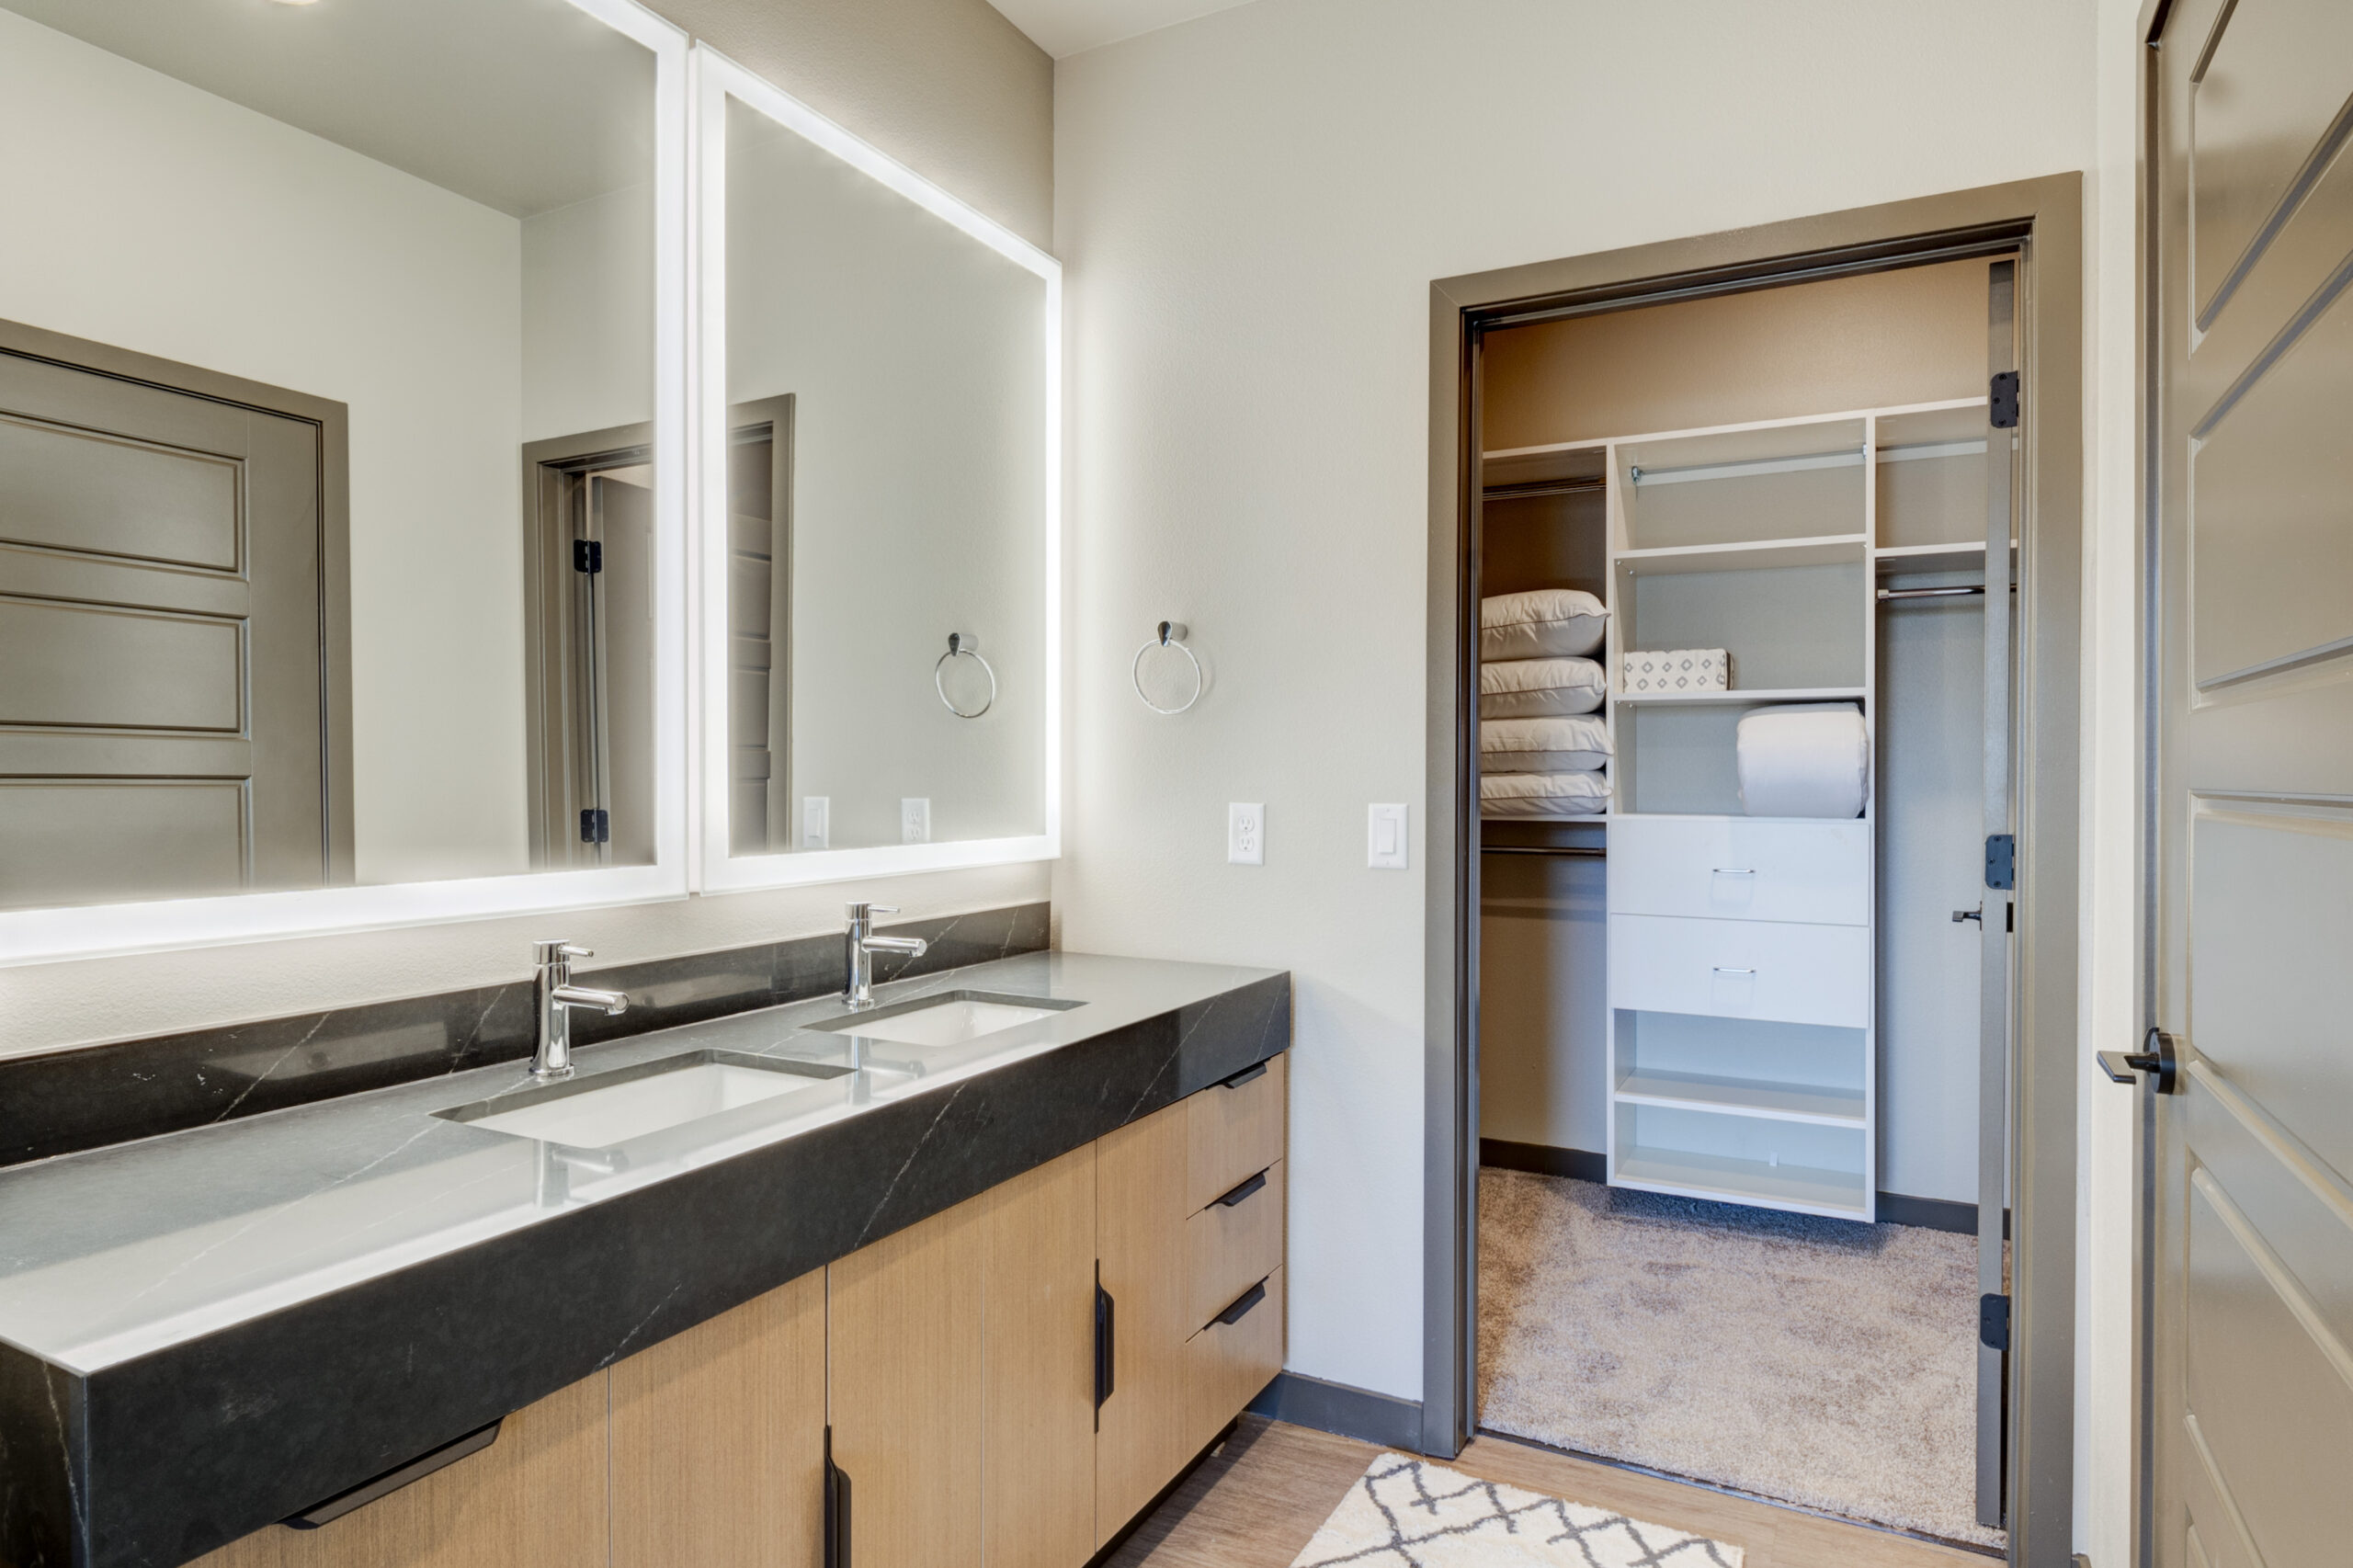 Bathroom with wood floor and cabinets, stone counter, dual lighted mirrors, and door to walk in closet.